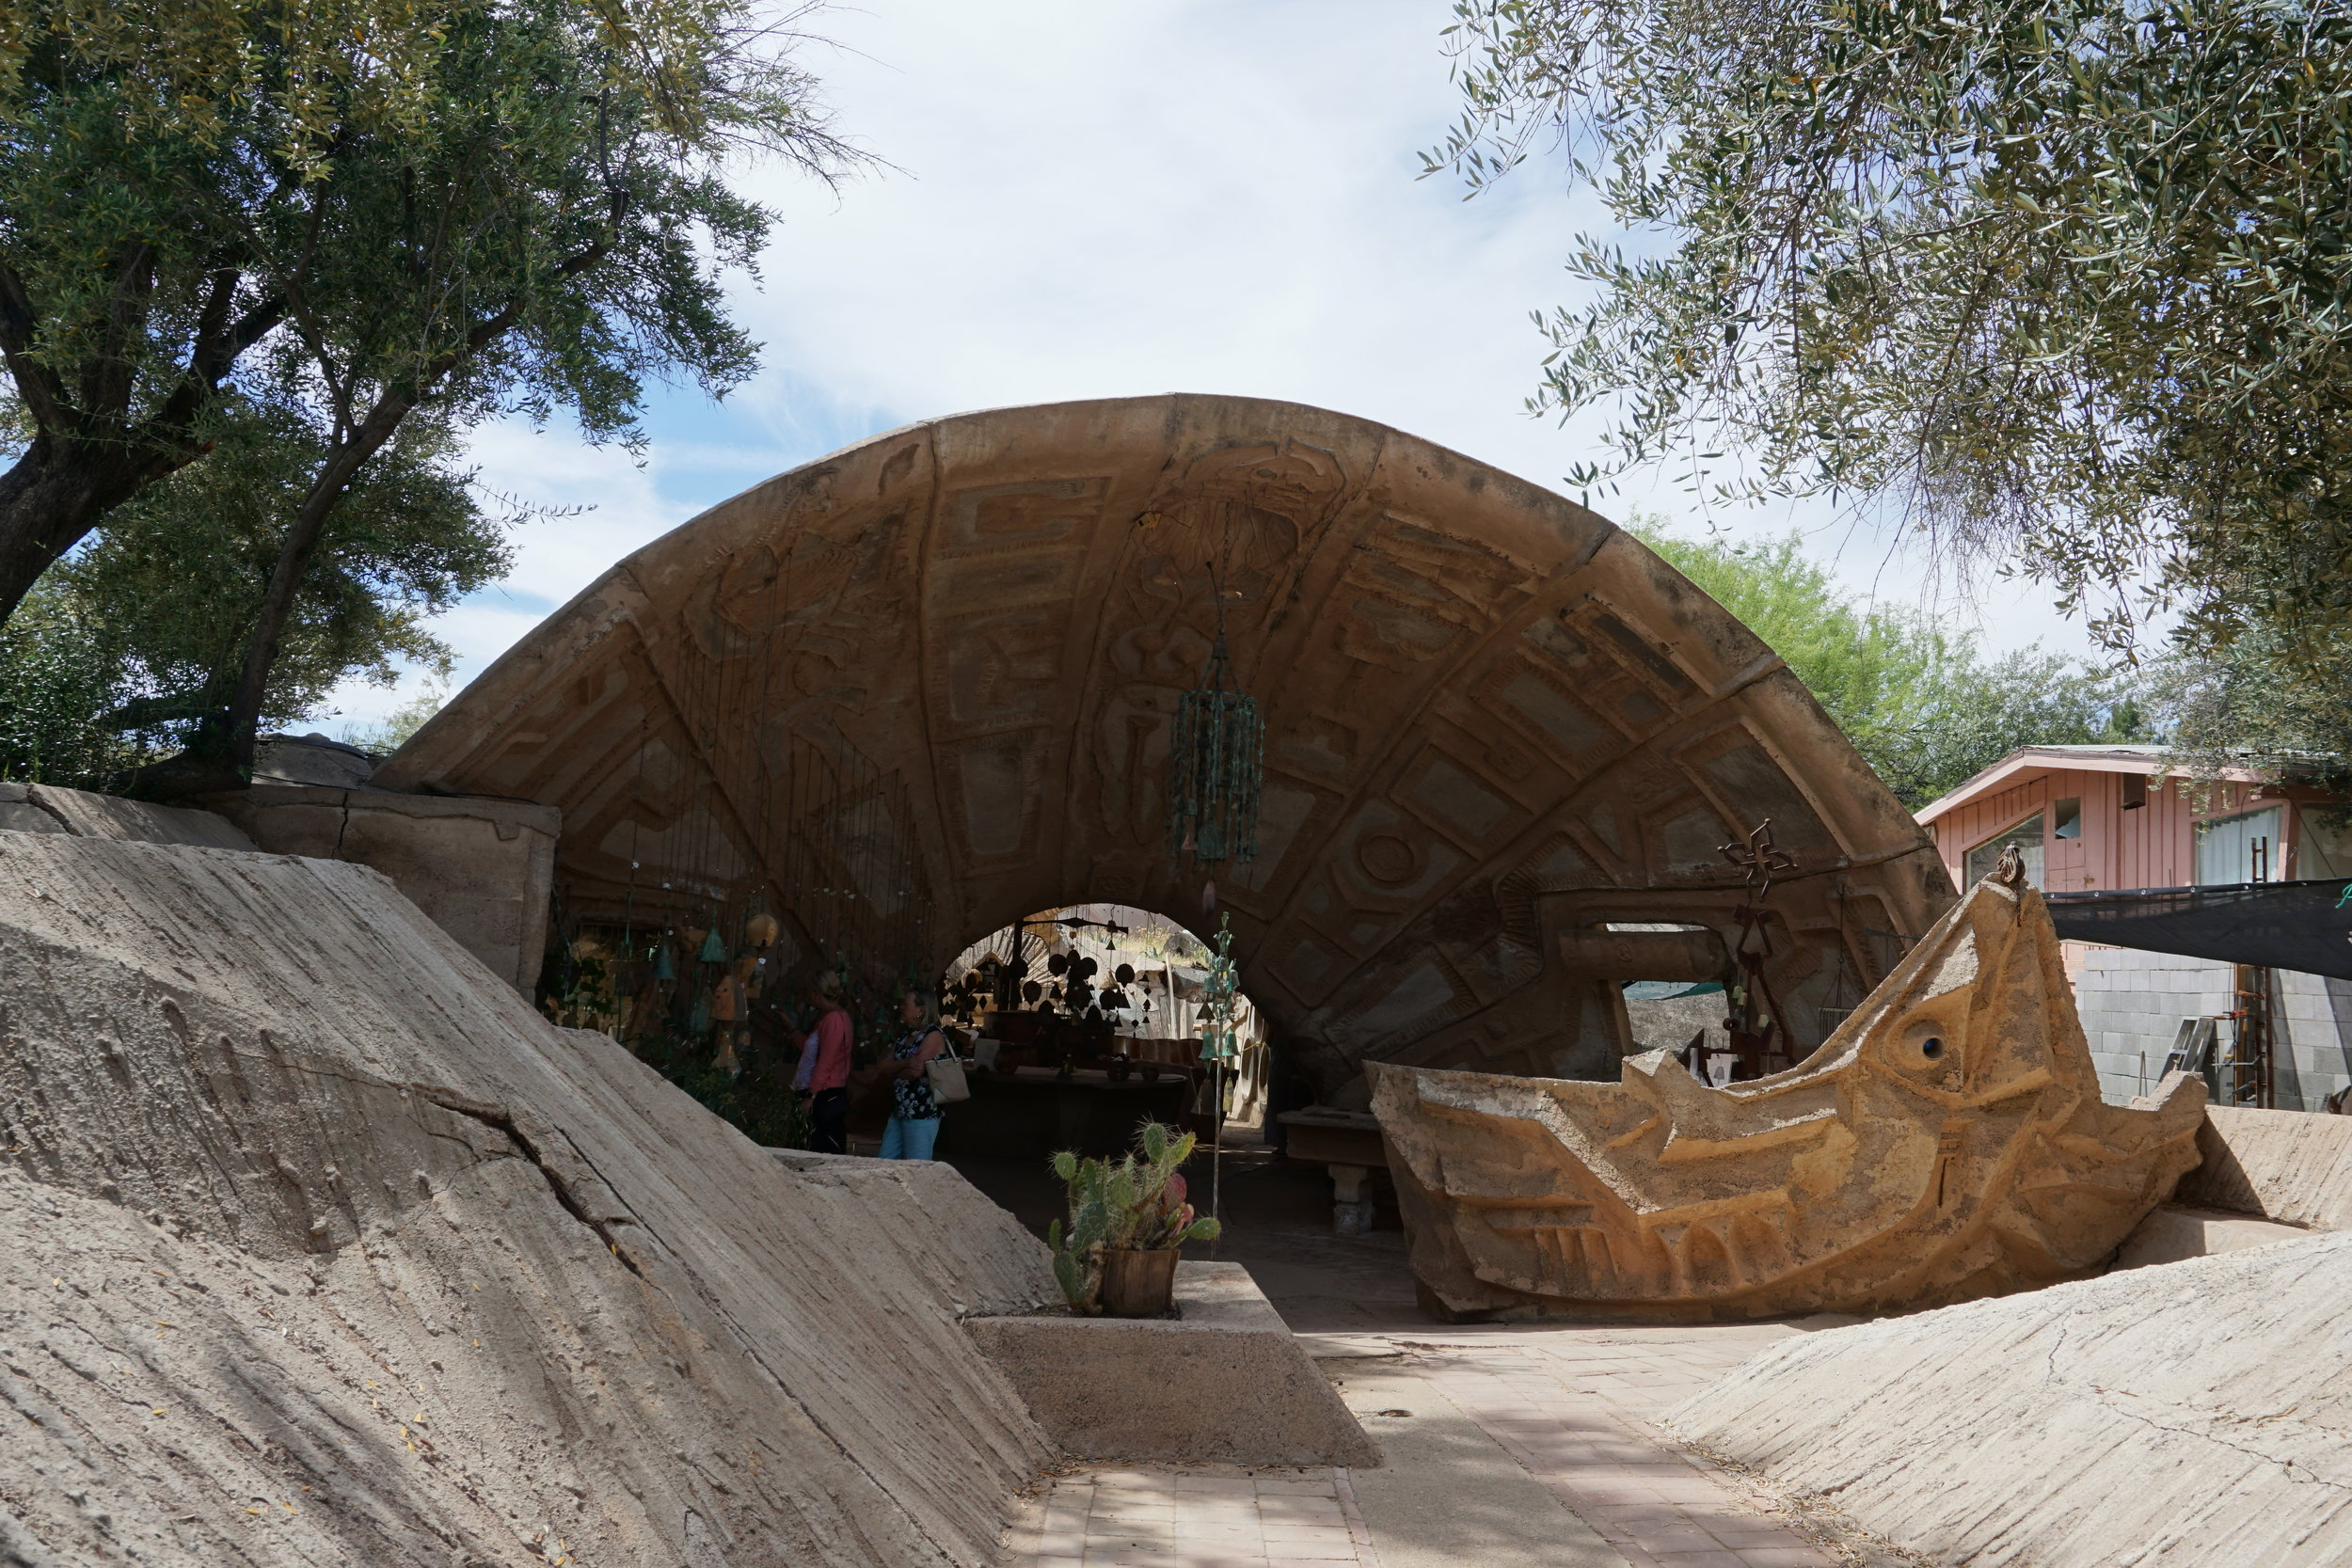 The roof panels were formed by sculpting the ground and then using rebar and concrete to create the shells.